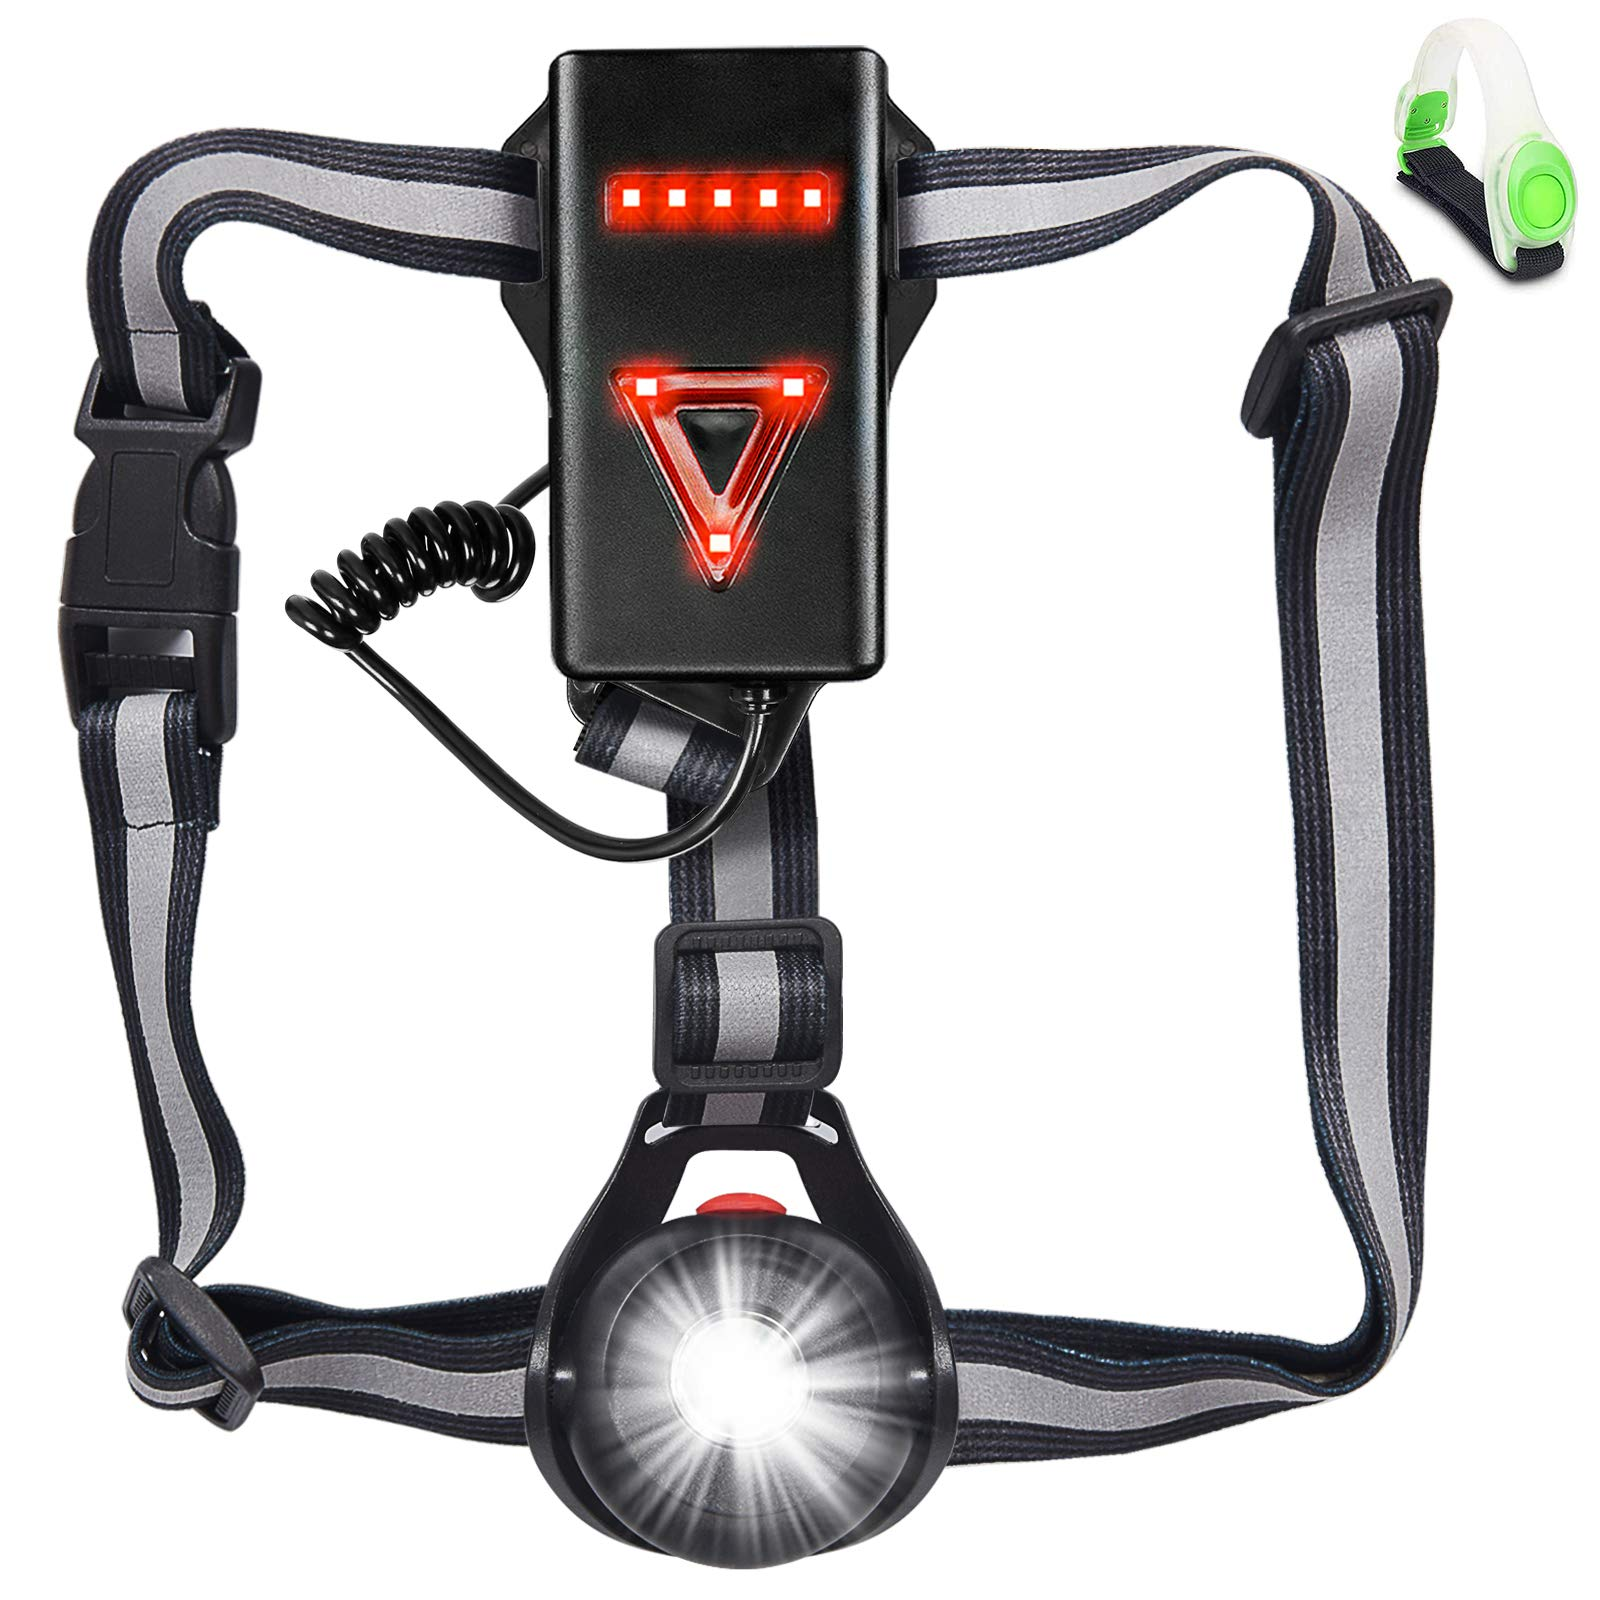 Running Jogging Clip on Running Lights with Runners and Joggers for Hiking Night Running Light with 3 Modes for Runners Running Light Lamp Waterproof Flashlight USB Rechargeable LED Chest Light